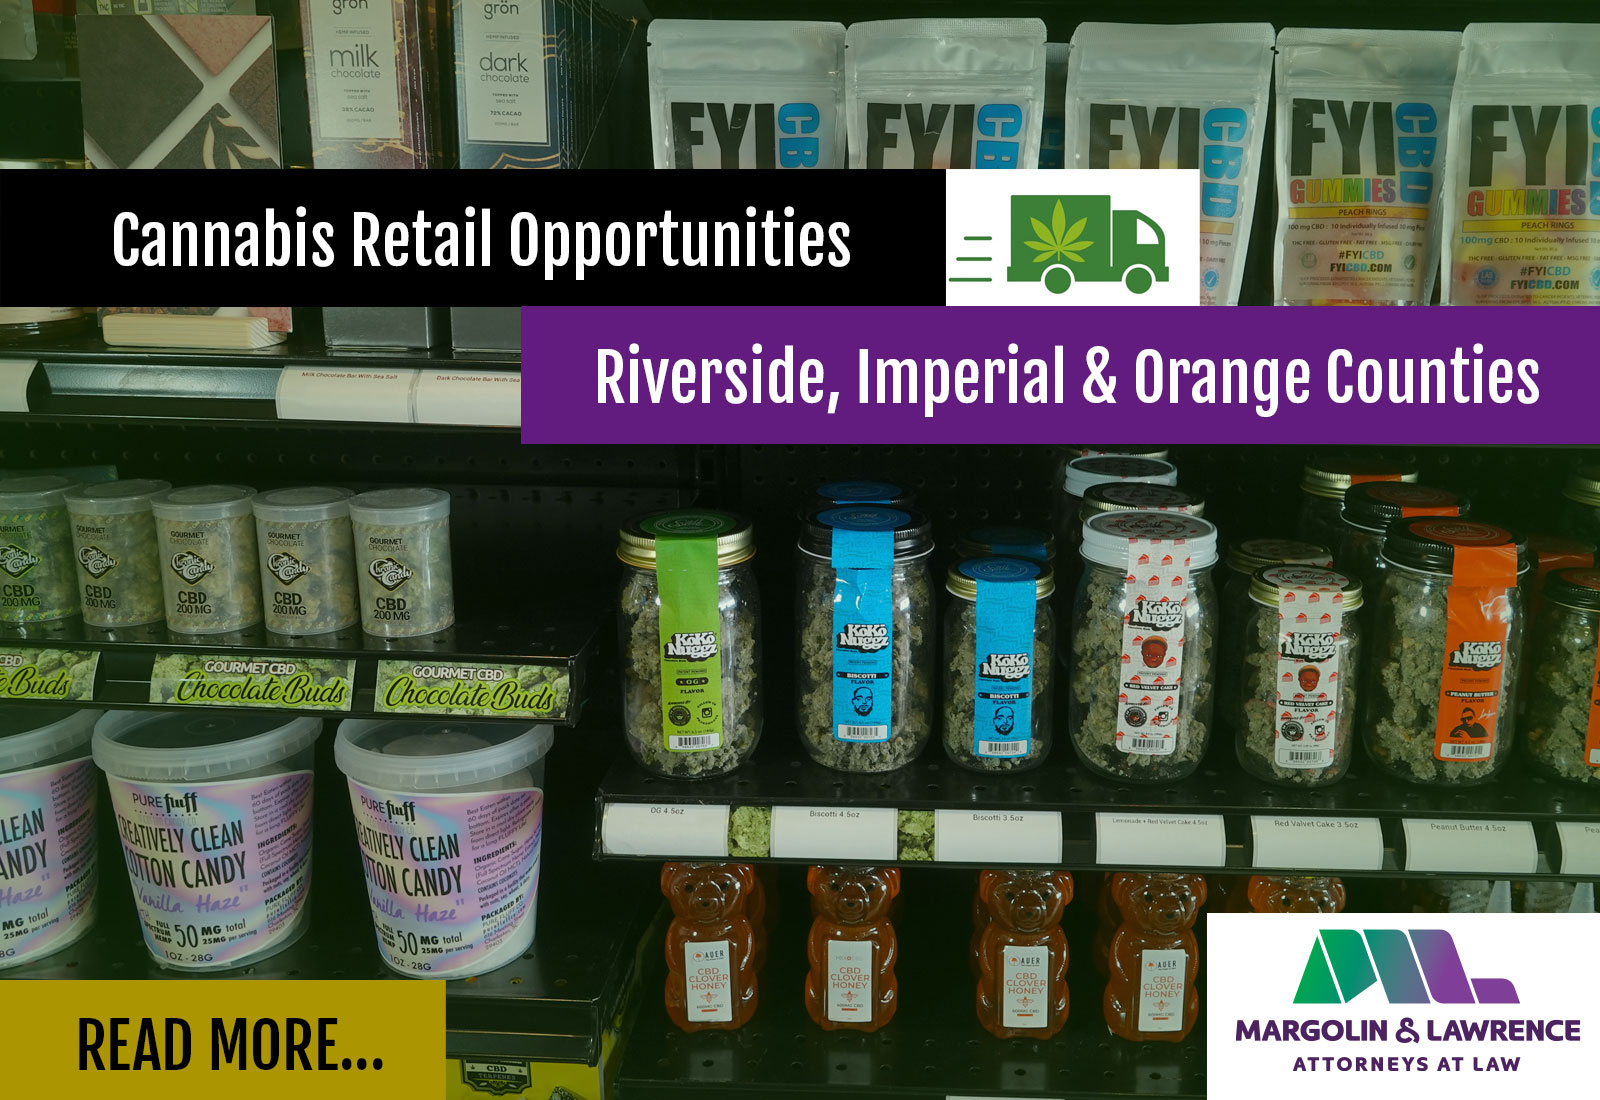 Cannabis Retail Opportunities